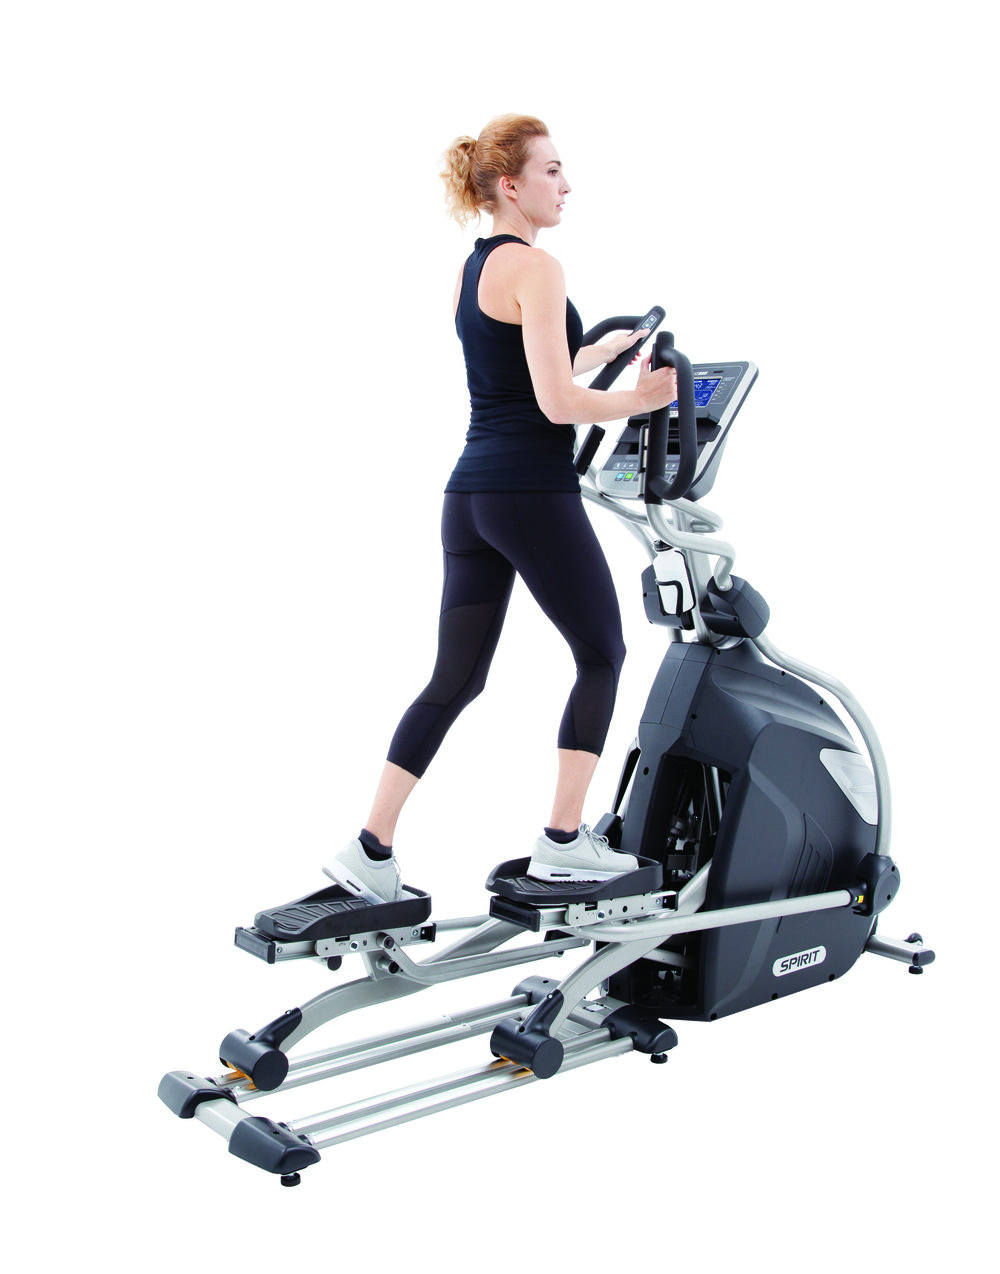 Spirit Stepper/Elliptical Hybrid